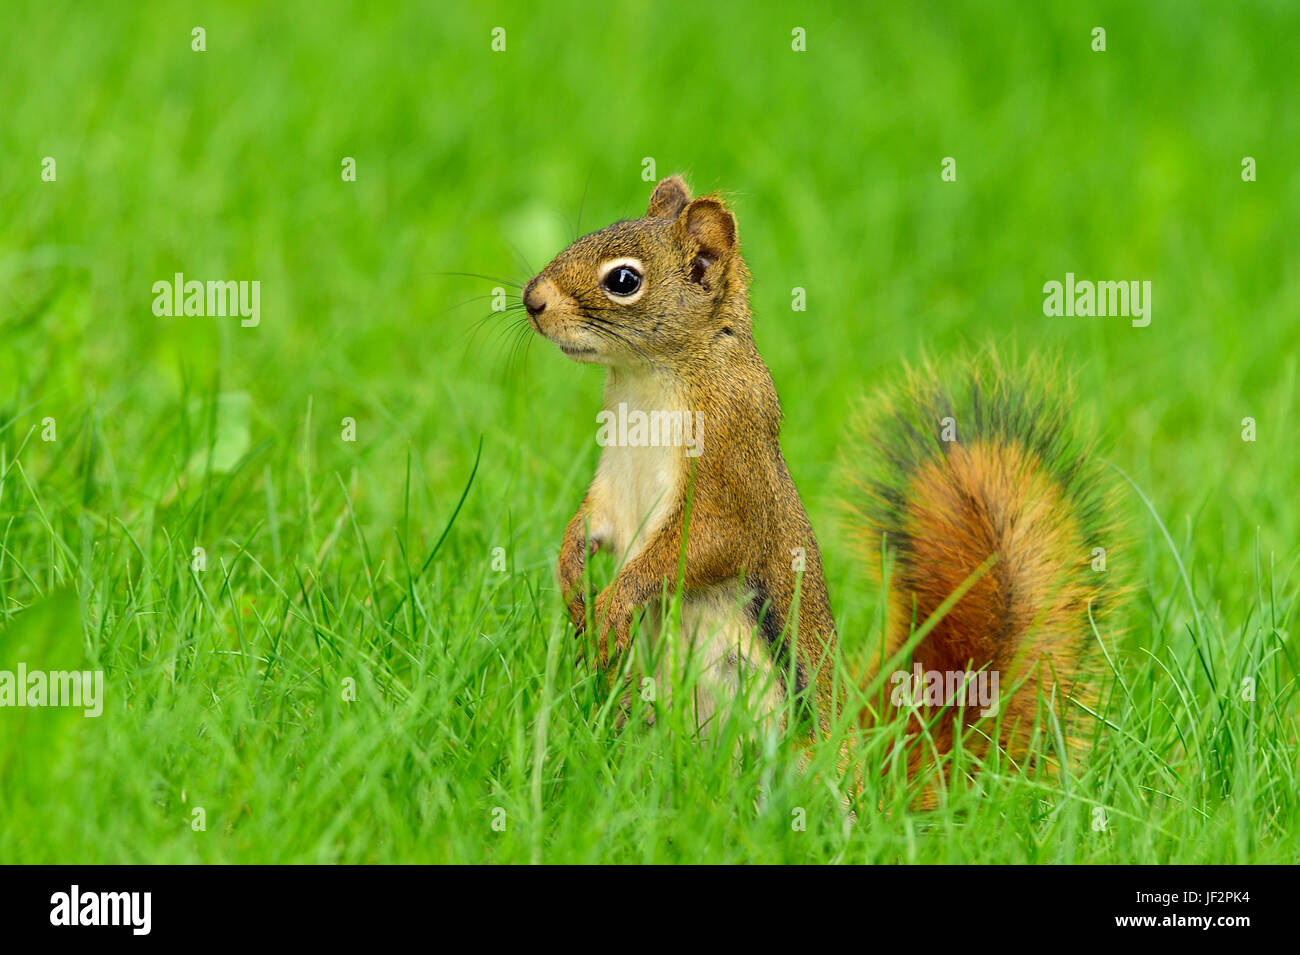 A red squirrel  Tamiasciurus hudsonicus; standing on his rear feet looking to the side in the deep grass in rural - Stock Image